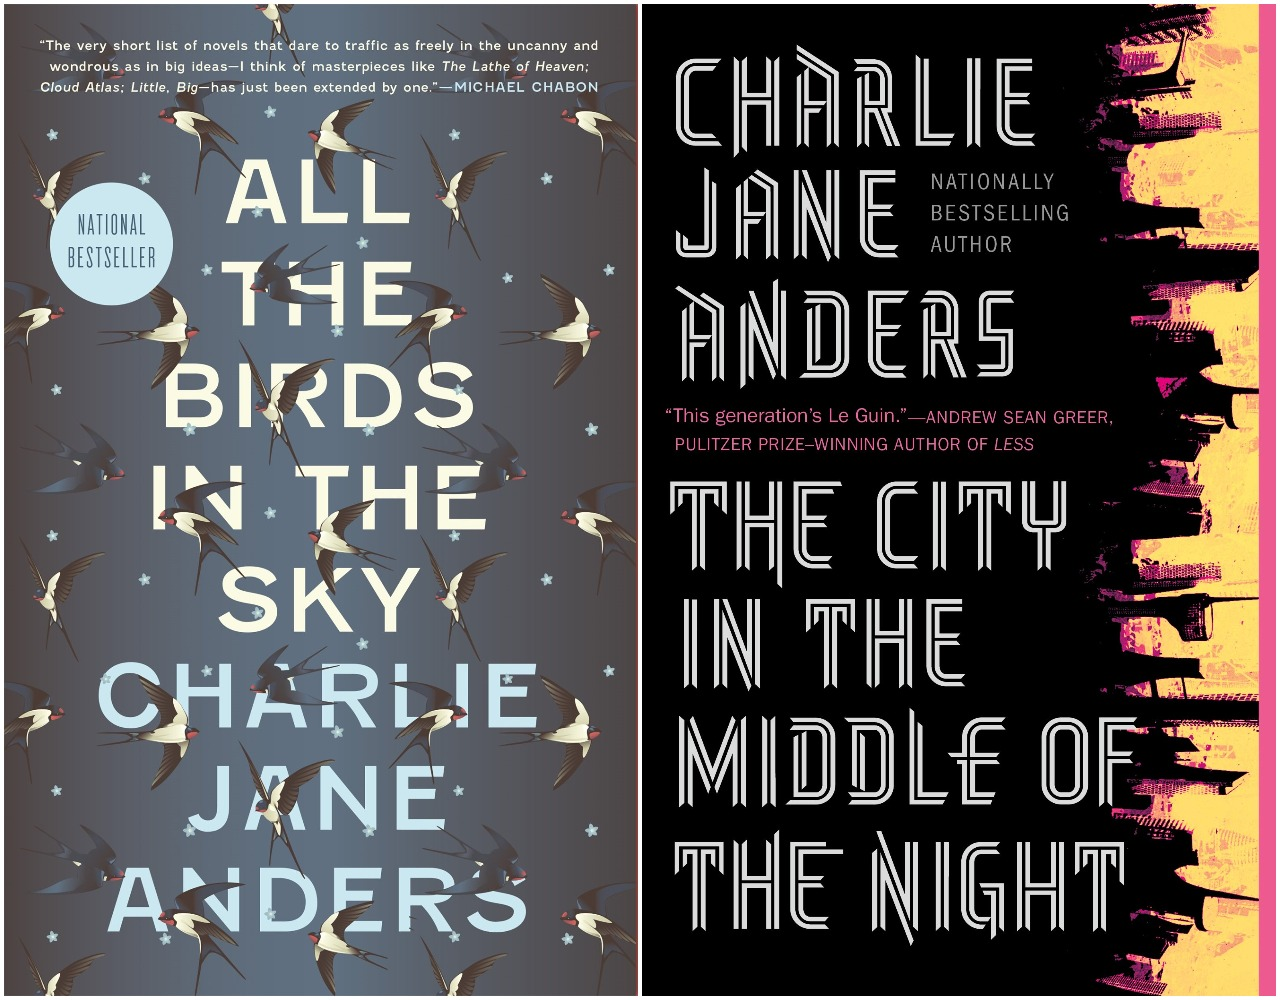 The covers for Charlie Jane Anders' previous novels, All the Birds in the Sky, and The City in the Middle of the Night.